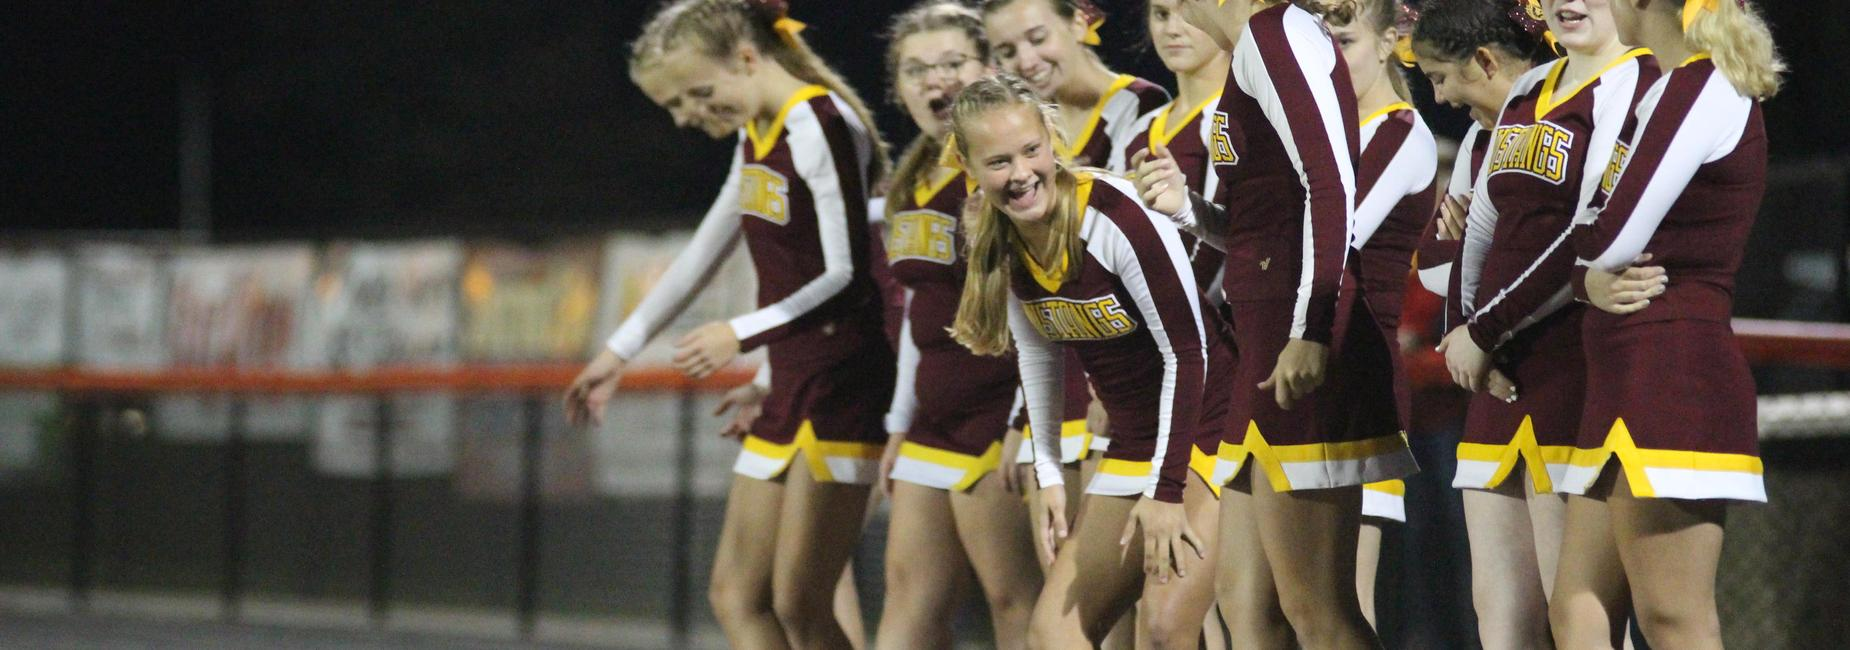 Cheerleaders laughing